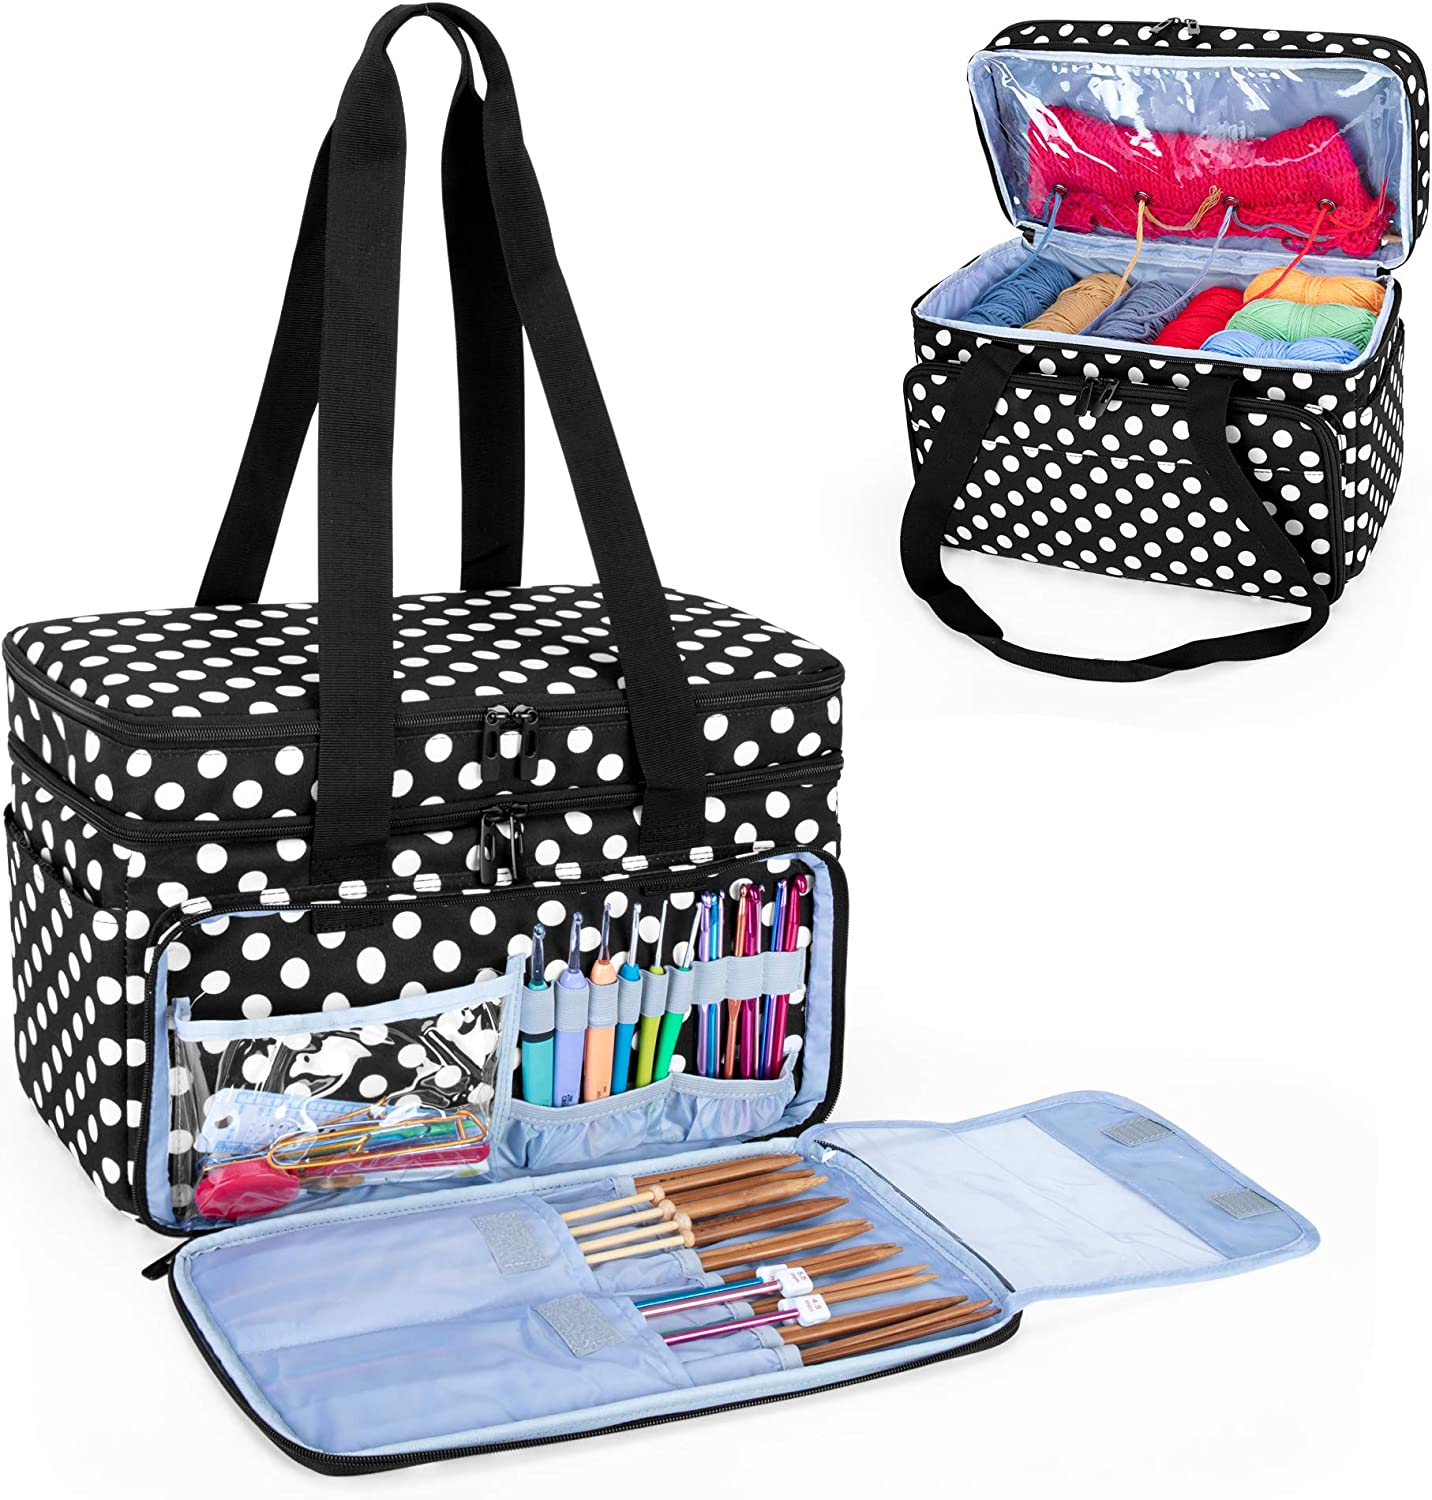 55% OFF CURMIO Double-Layer Knitting Tote Bag Com with Yarn Storage Branded goods